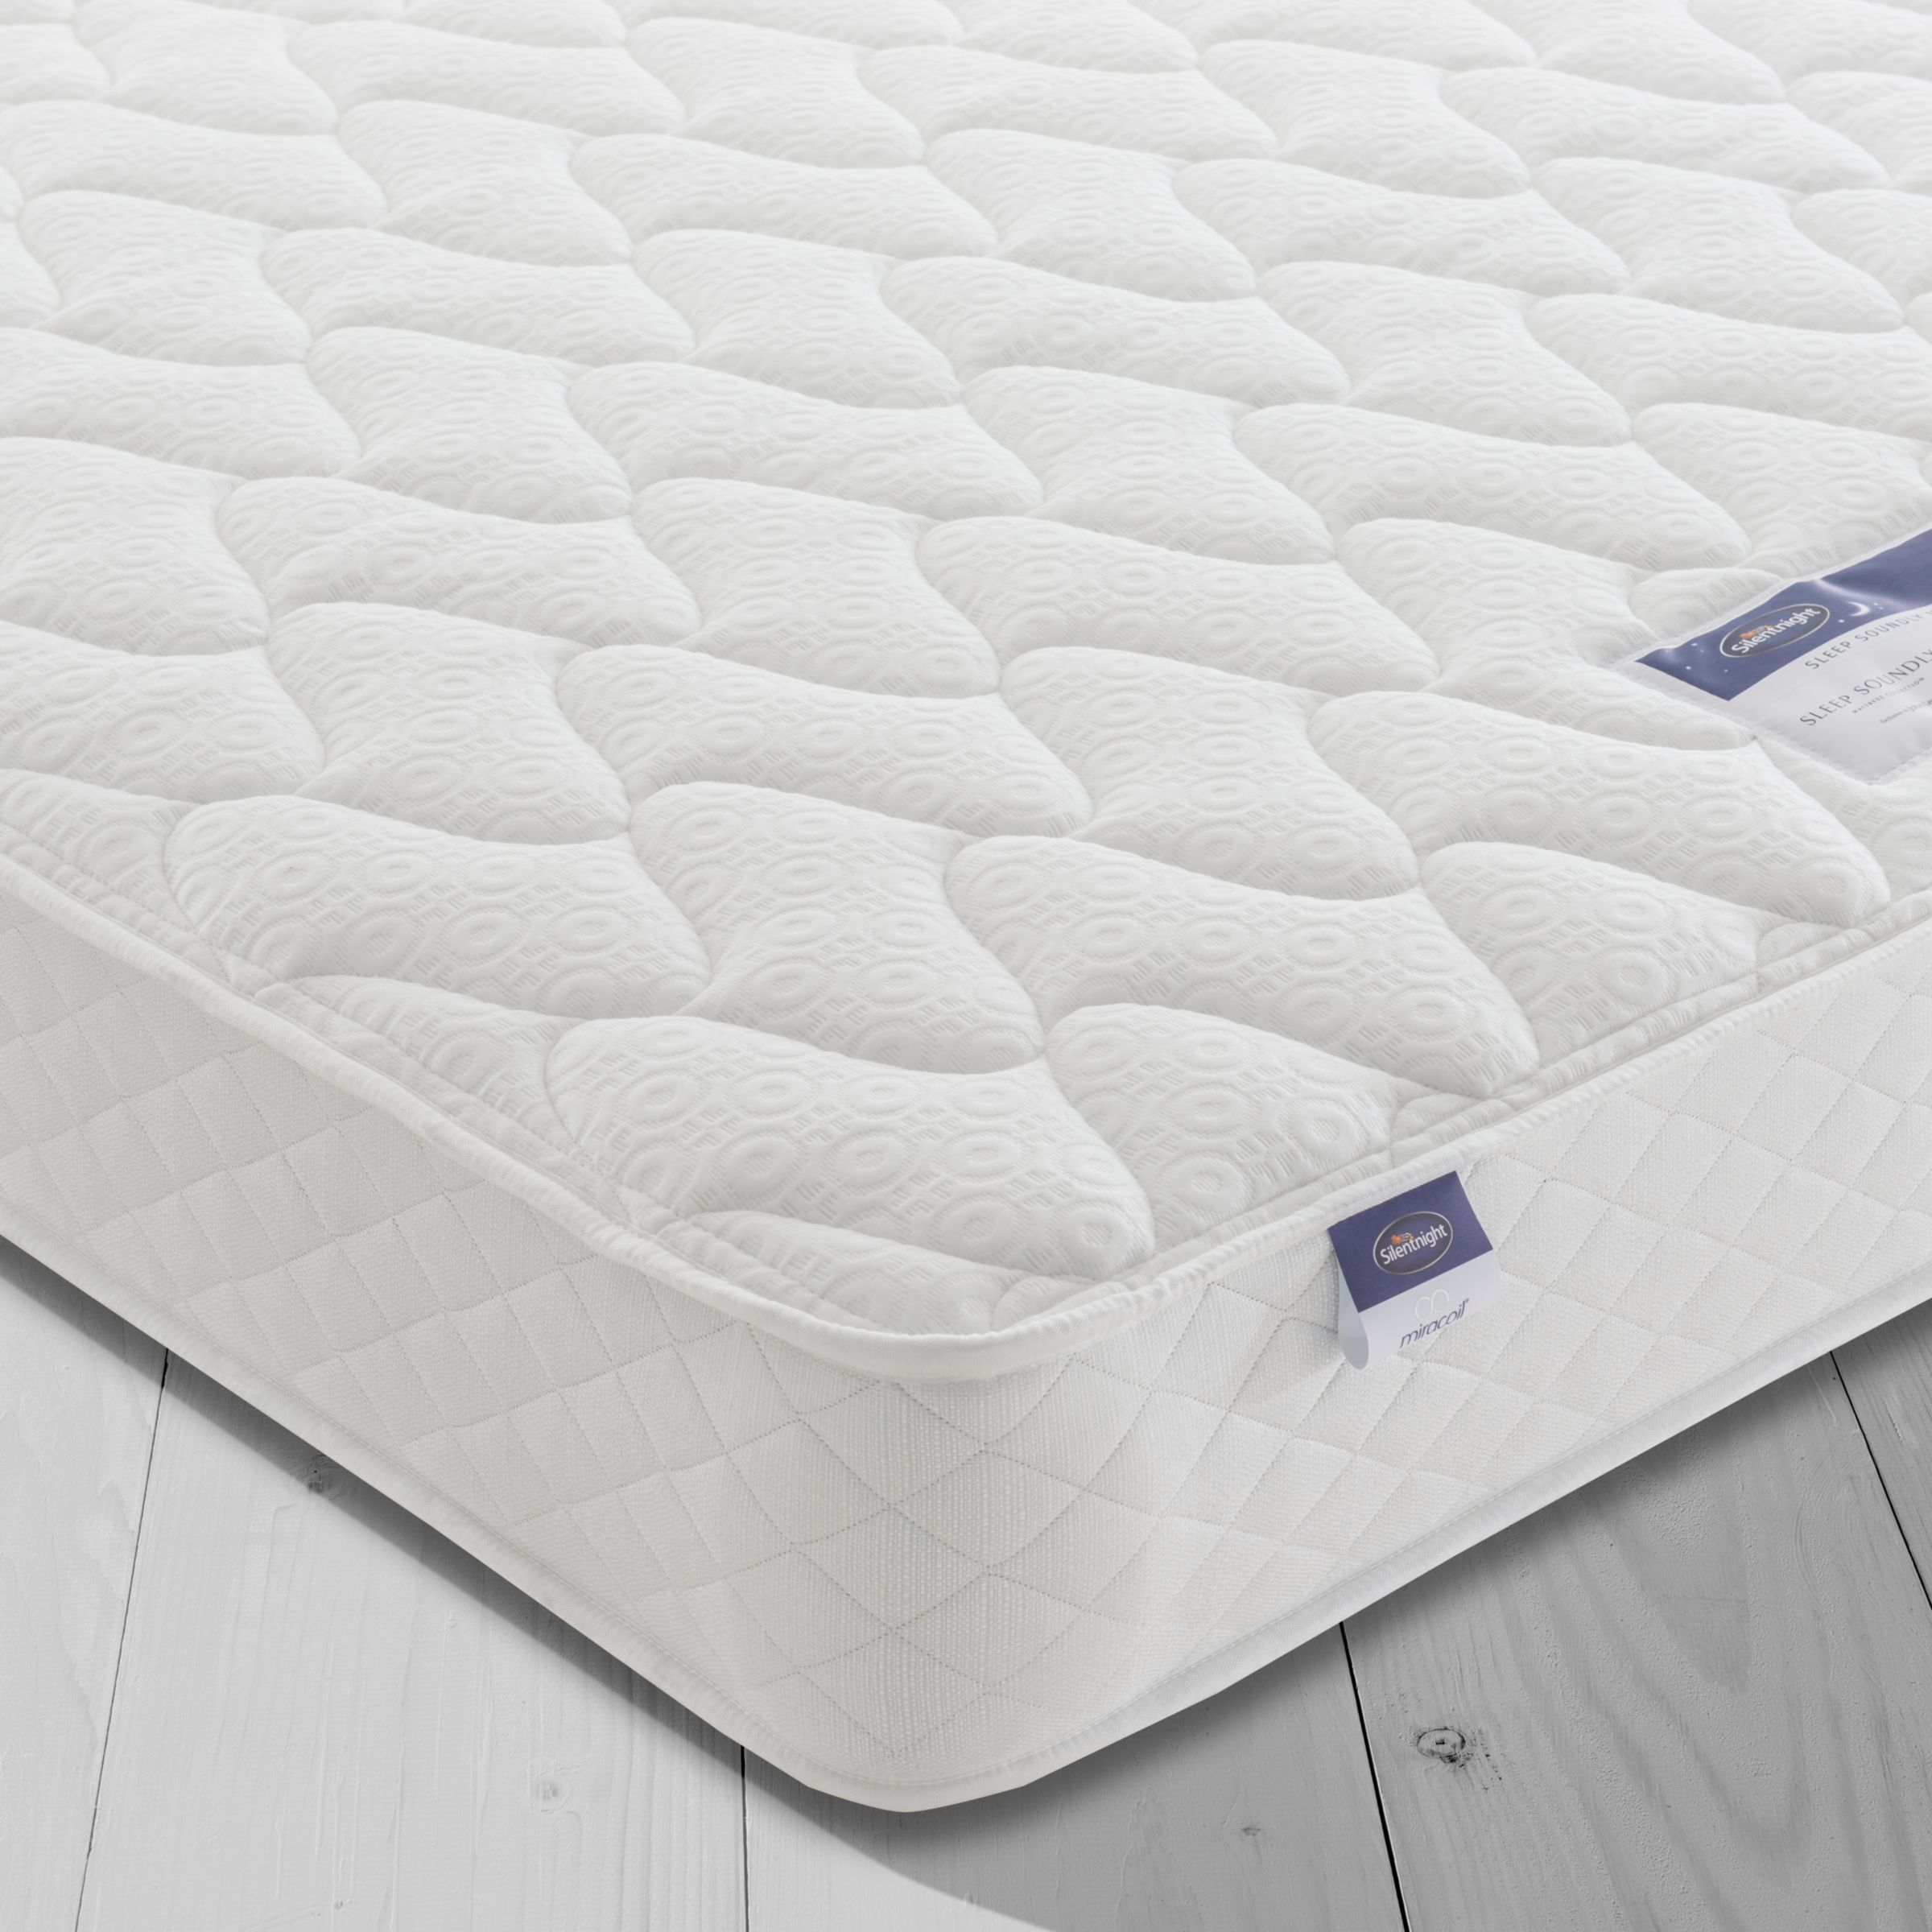 threshold sleep picasso trim systems item q mattressqueen width hybrid mattress txl products queen enso height